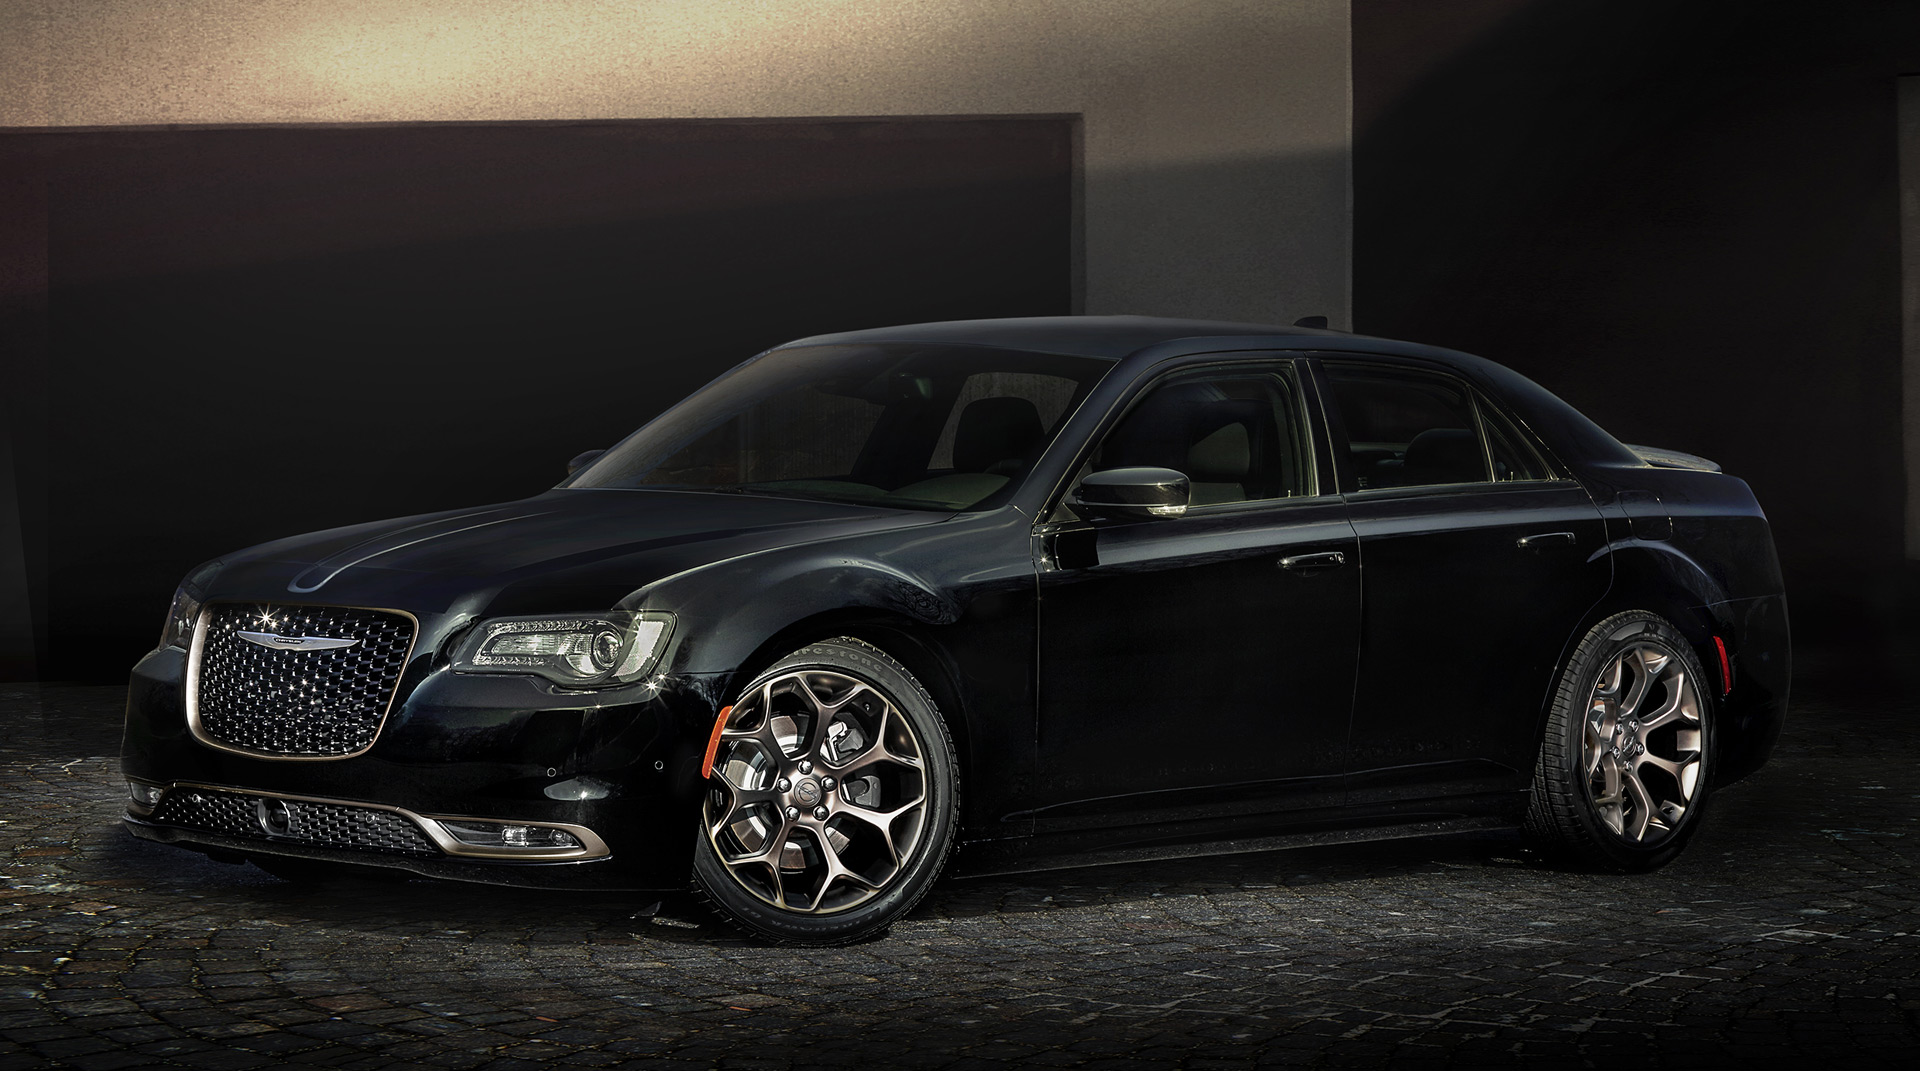 Fastest Car In The World Wallpaper 2015 2016 Chrysler 200 And 300 Get Alloy Edition Treatment